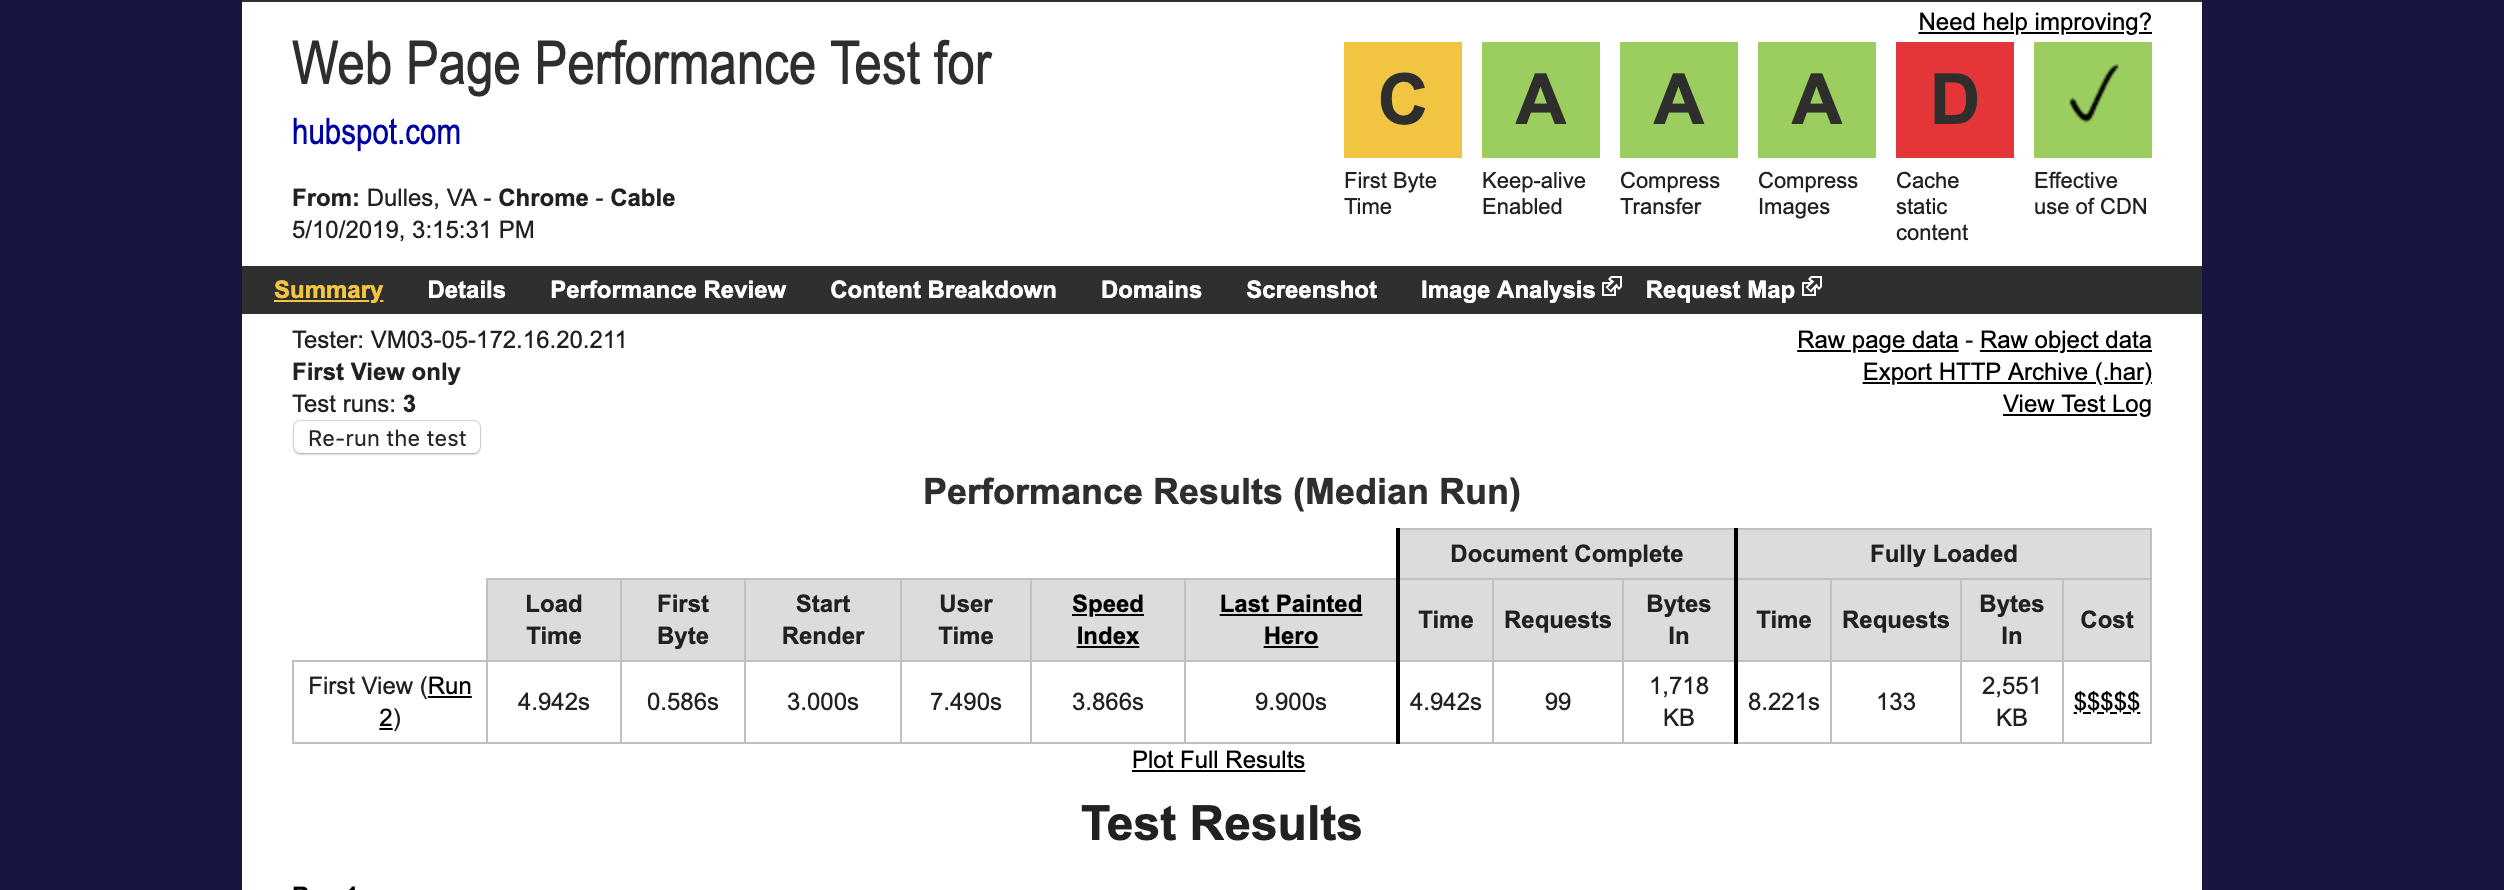 website load speed test - WebPageTest.org